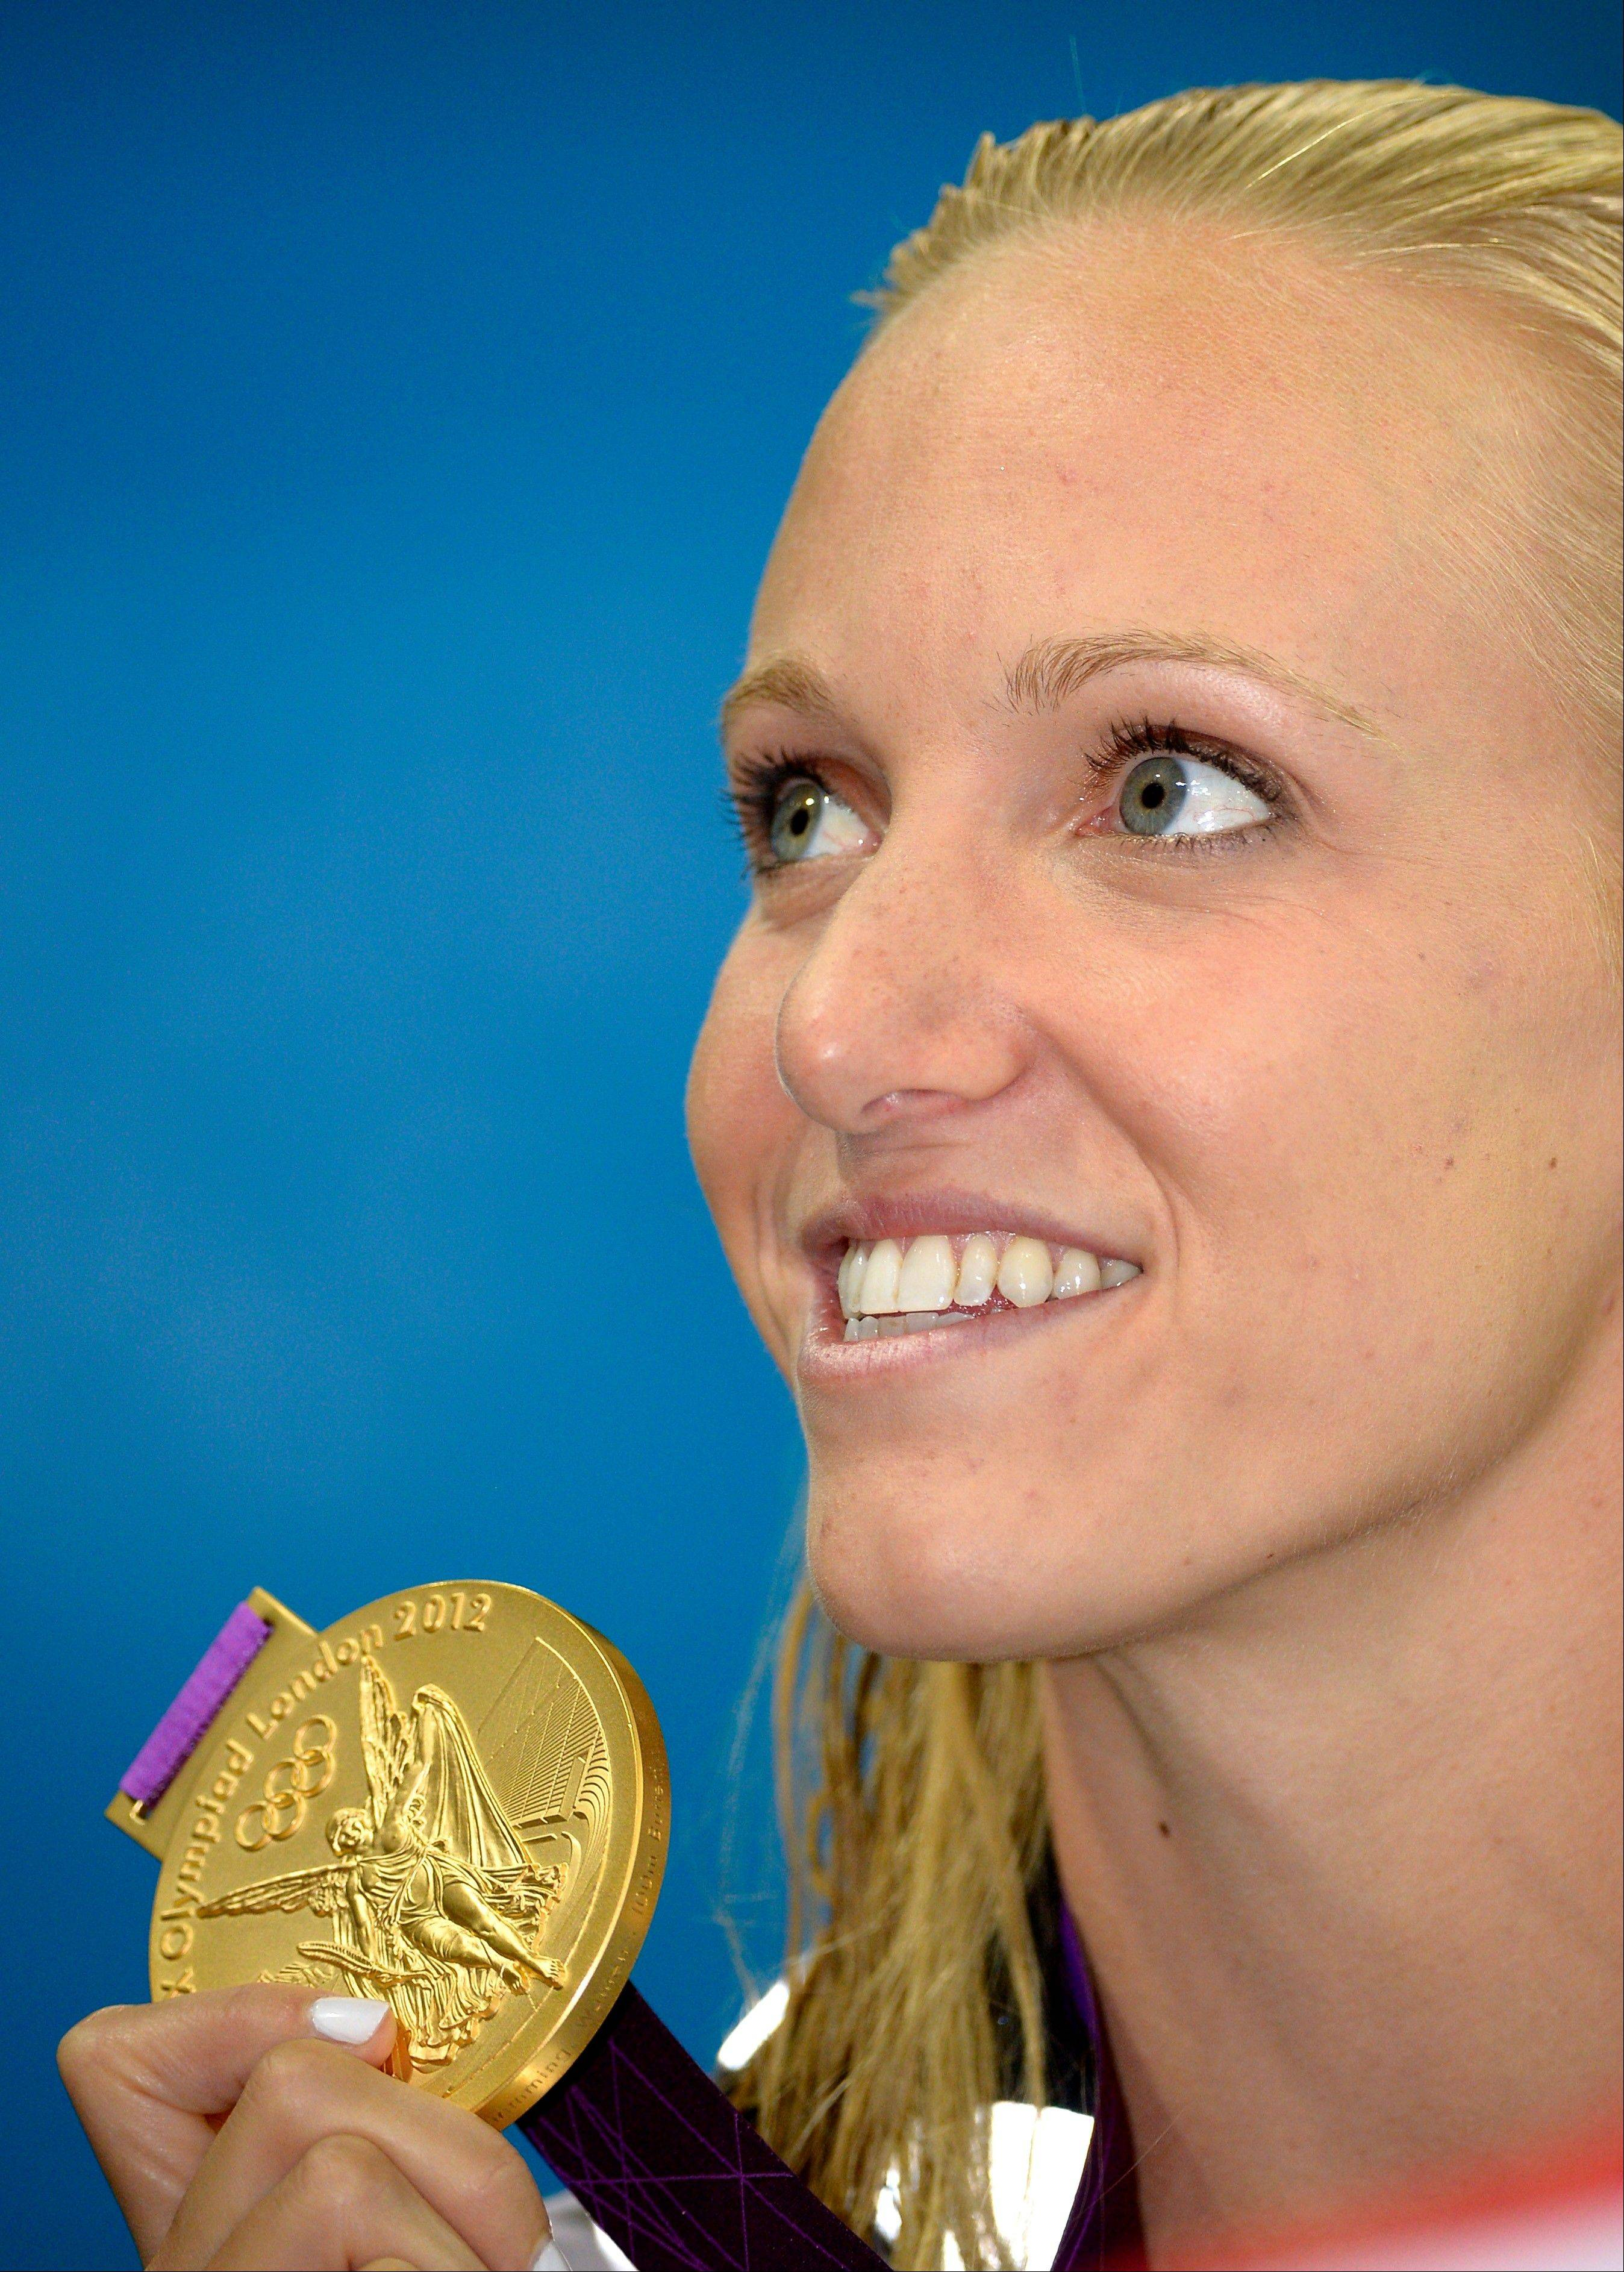 United States' Dana Vollmer poses with her gold medal for the women's 100-meter butterfly swimming final at the Aquatics Centre in the Olympic Park during the 2012 Summer Olympics in London, Sunday. Vollmer set a new world record with a time of 55.98.